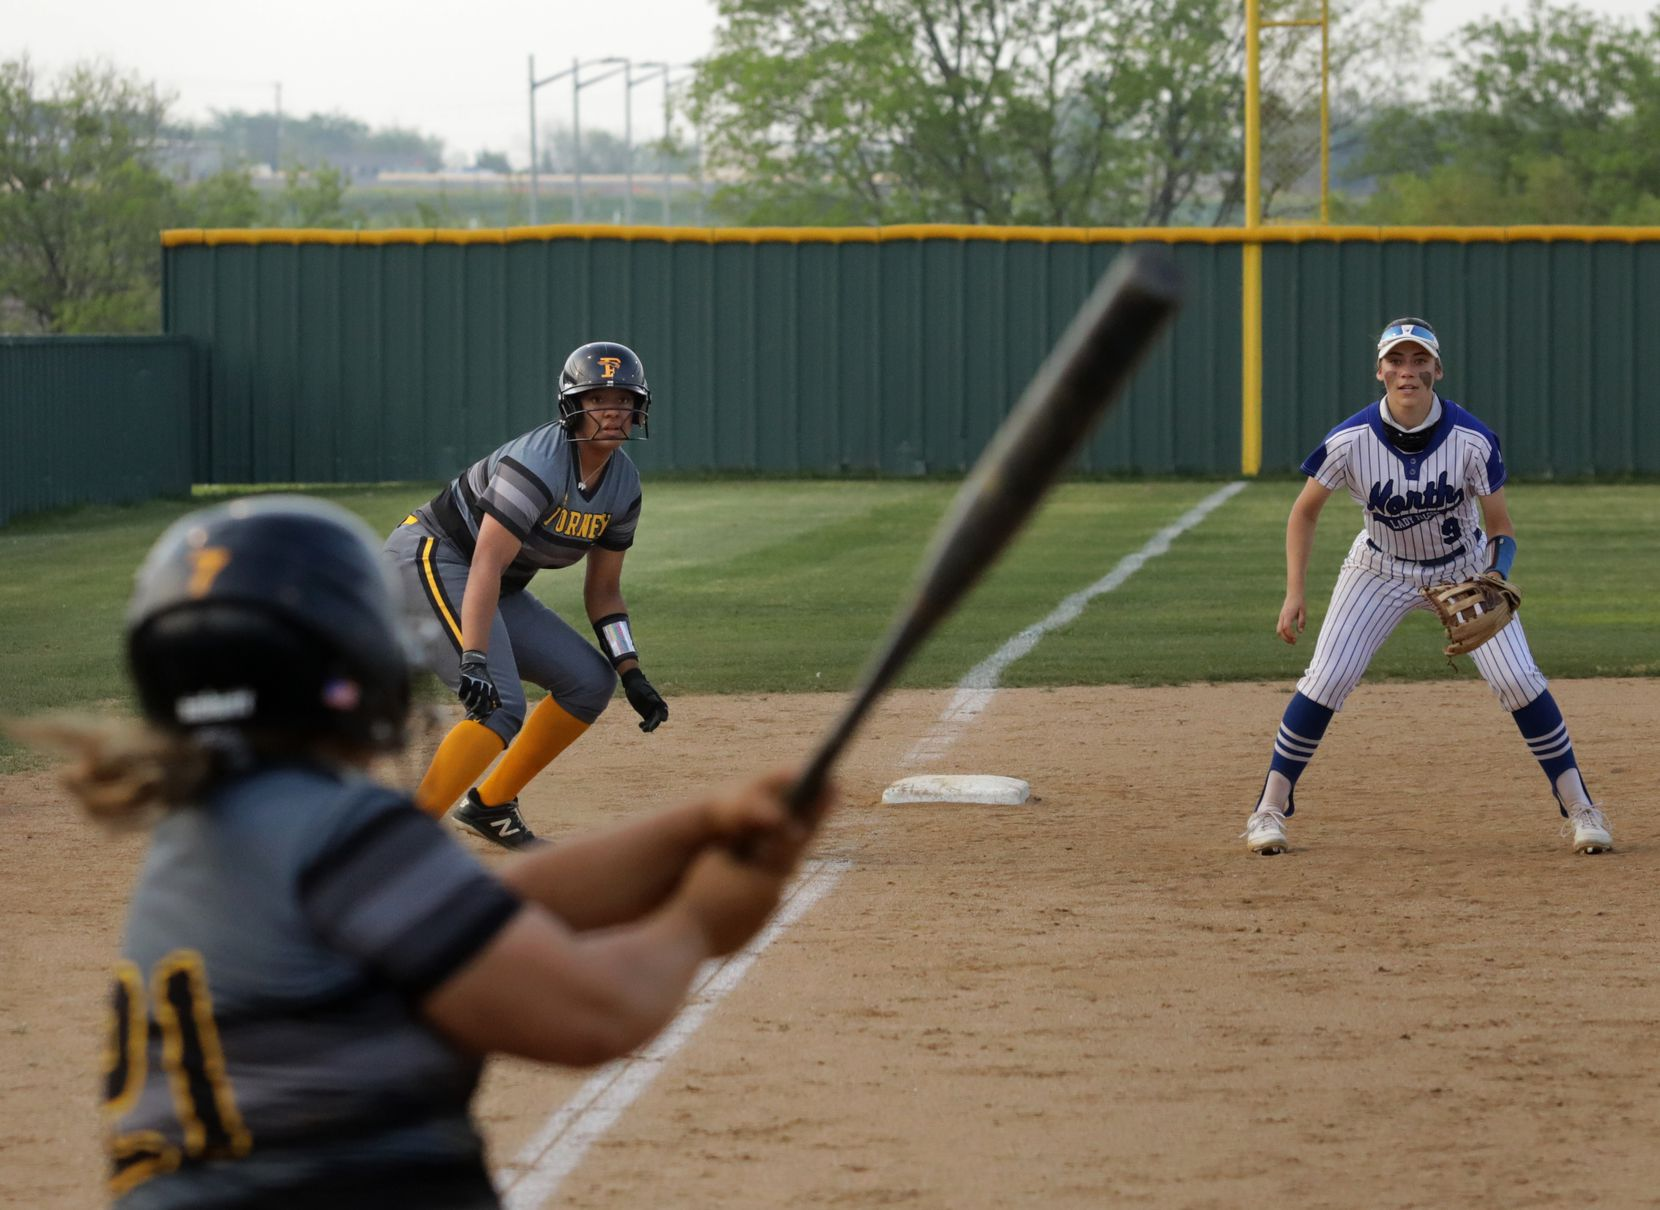 Vanessa Hollingsworth, center, prepares to run as Katie Kretz, left, swings for the ball during a softball game between Forney at North Forney at North Forney High School in Forney, TX, on Apr. 9, 2021. (Jason Janik/Special Contributor)